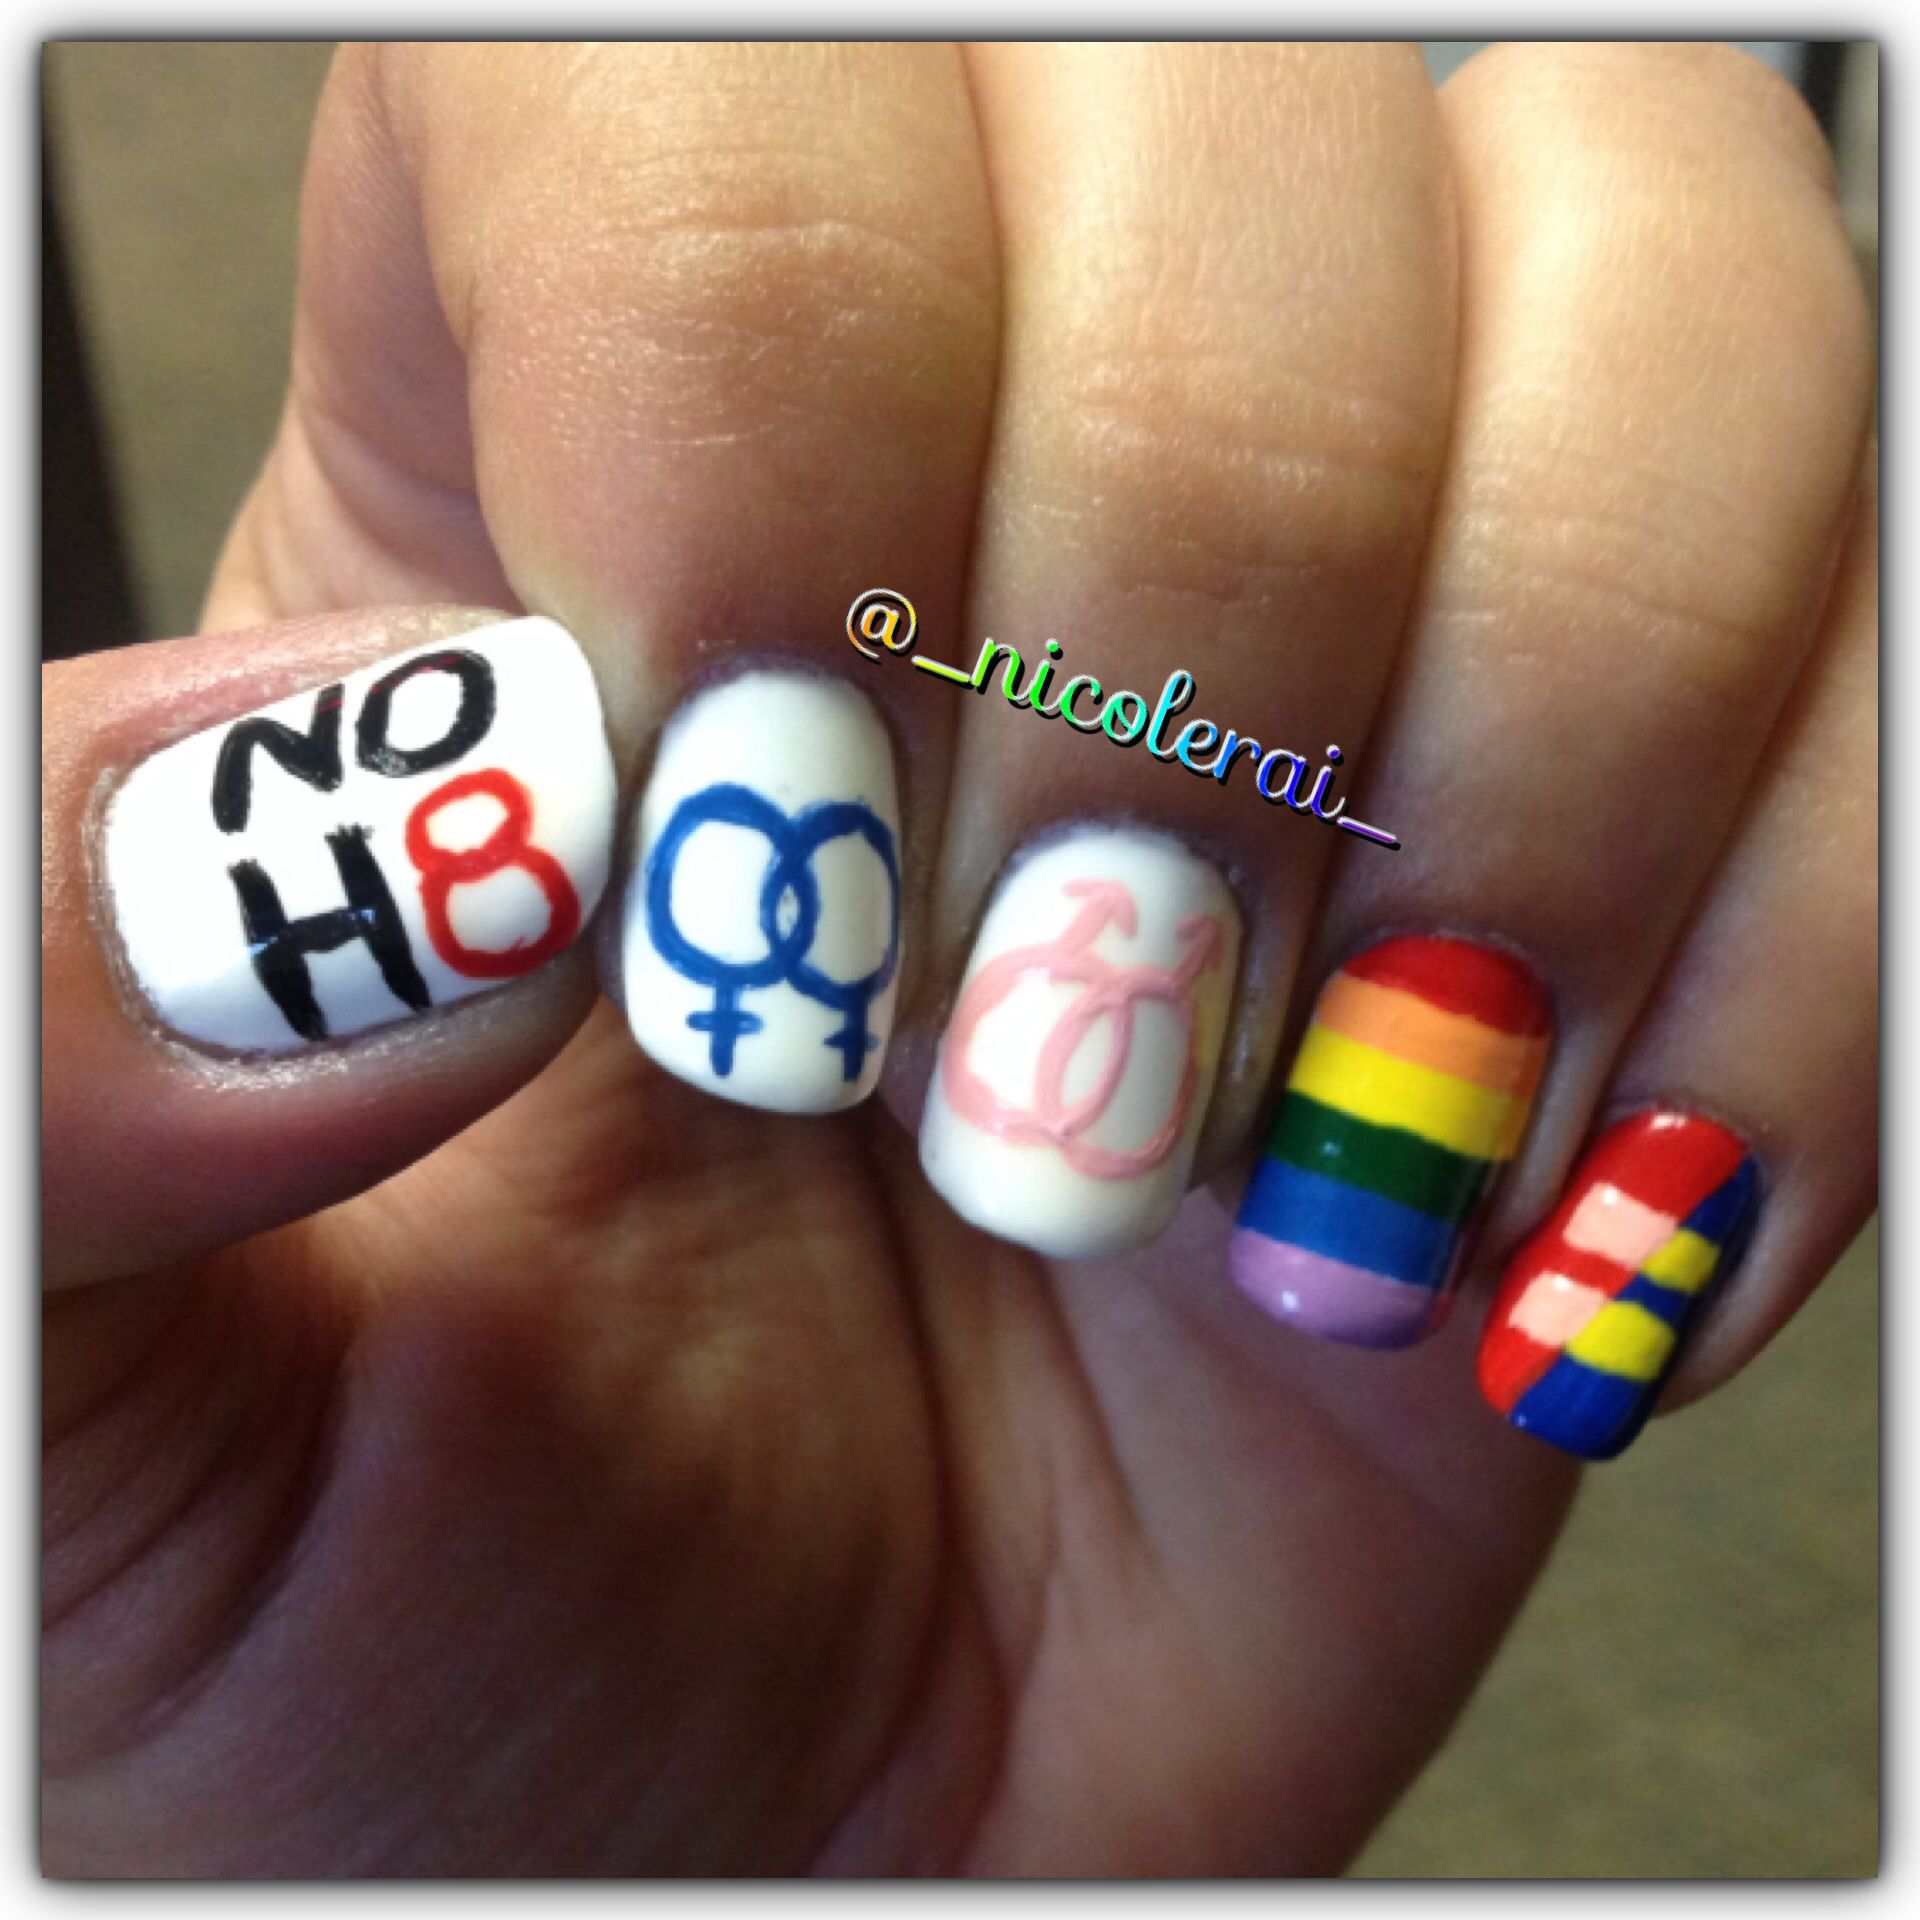 Pride Nail Designs: Gay Pride Nail Art For International Day Against